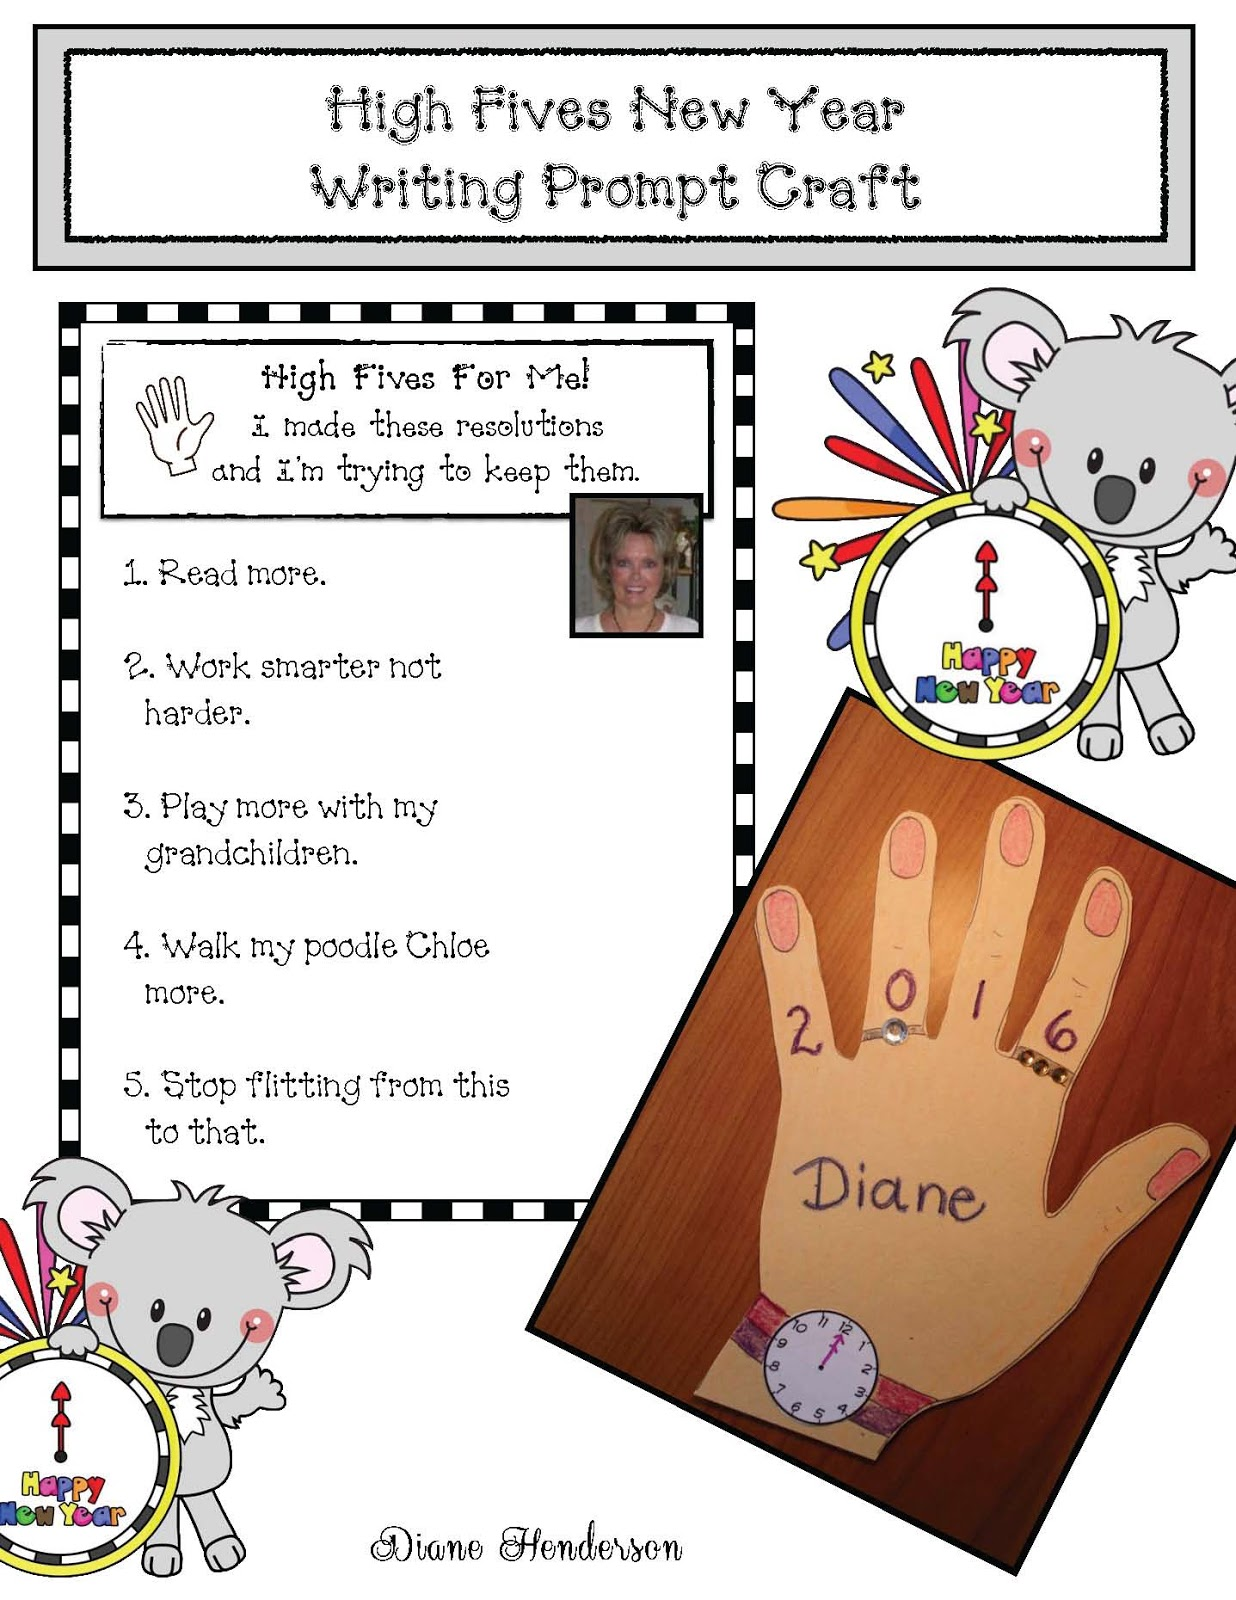 Happy New Year High Fives Writing Prompt Craft